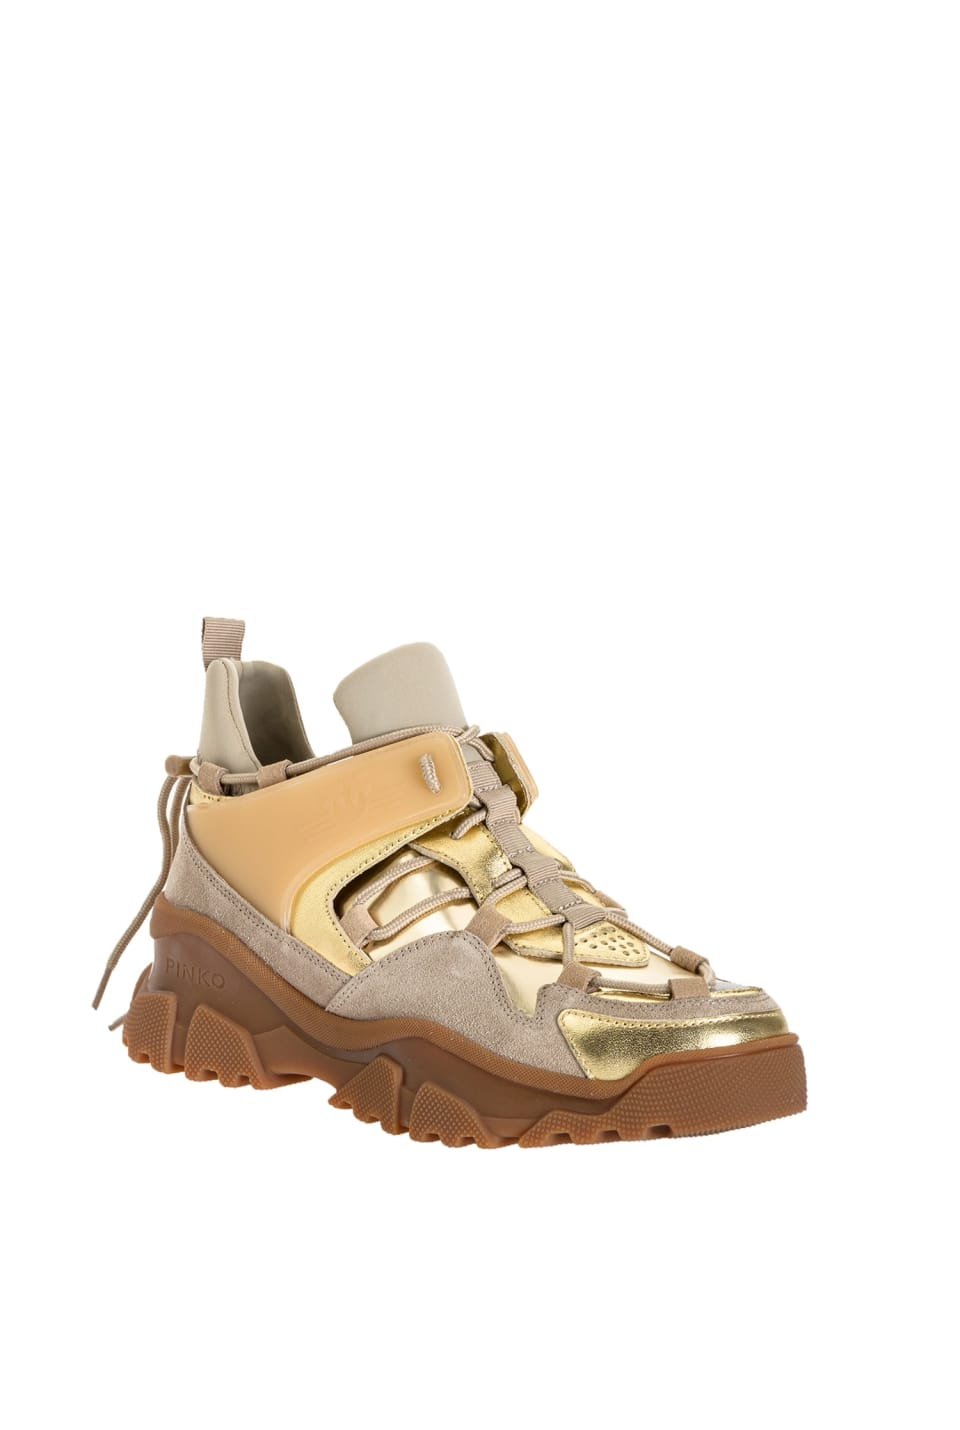 Laminated trek sneakers - Pinko